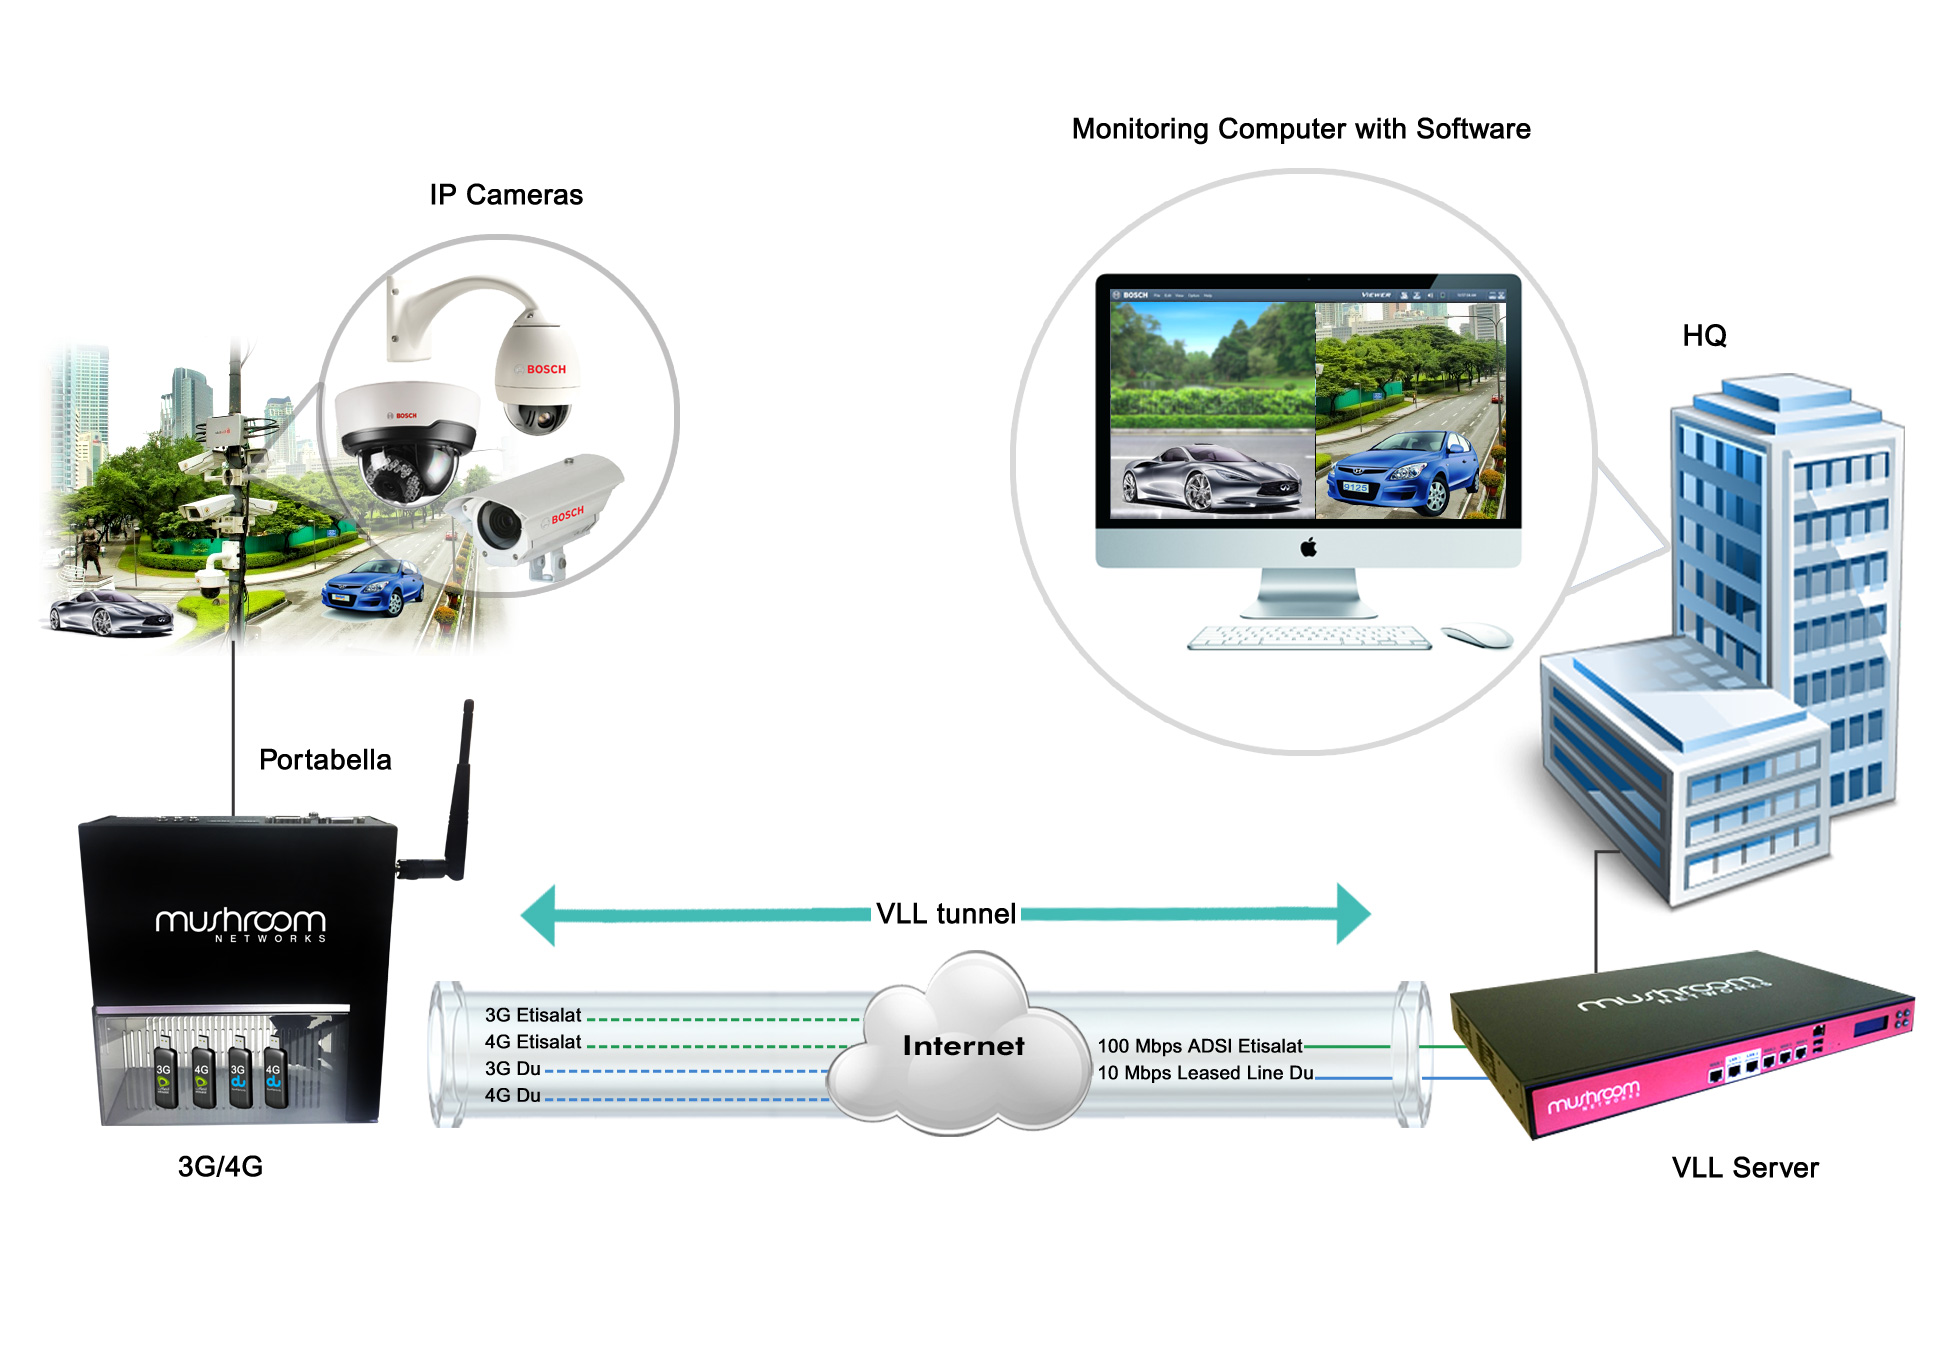 Internet Link Bonding and Virtual Leased Line solution in Law Enforcement